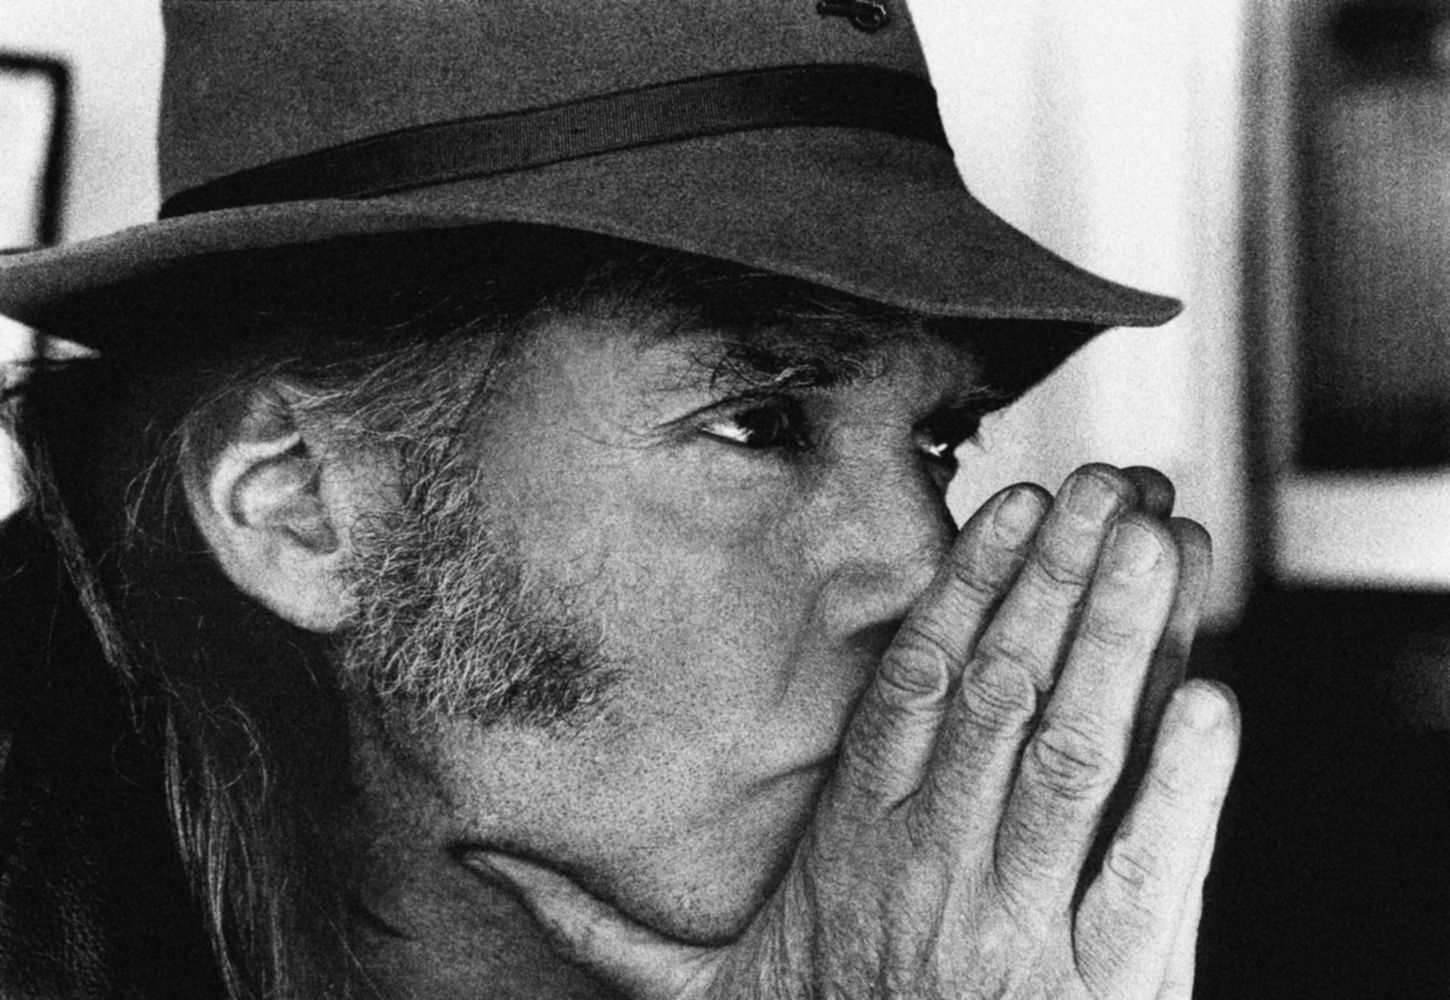 Neil_Young_Portrait_1472